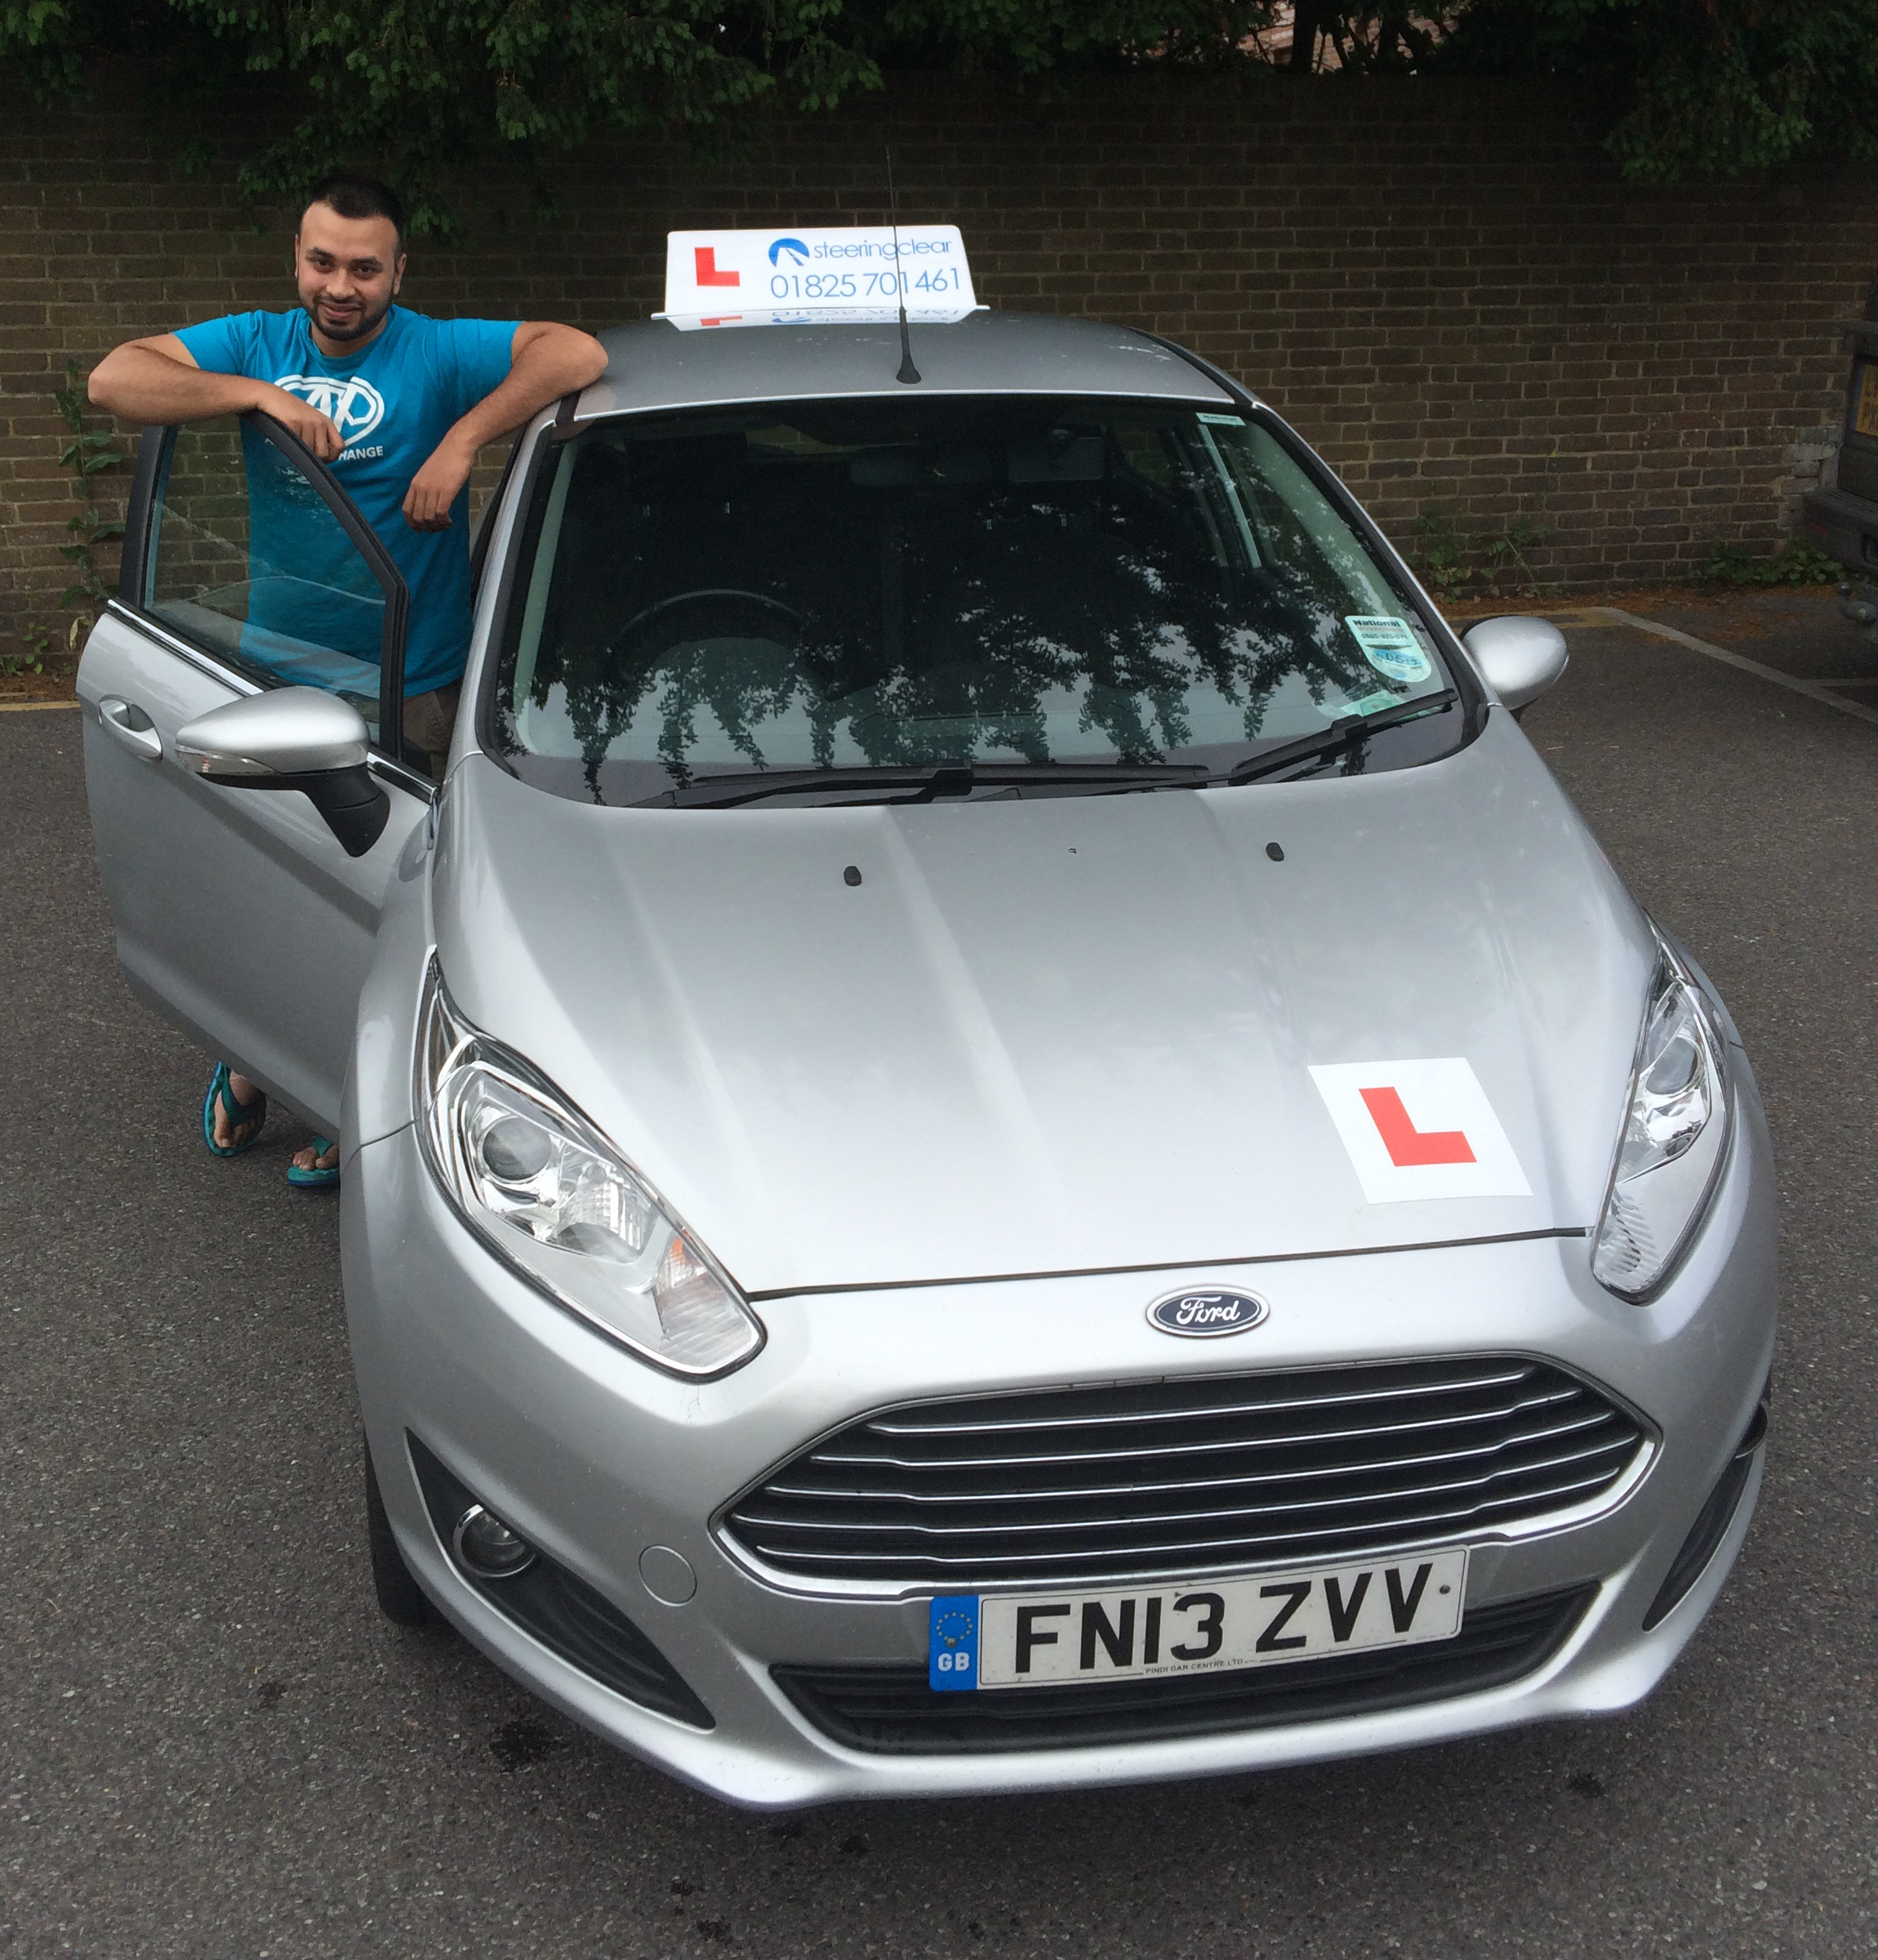 Al Siddik - Our Uckfield Driving Instructor